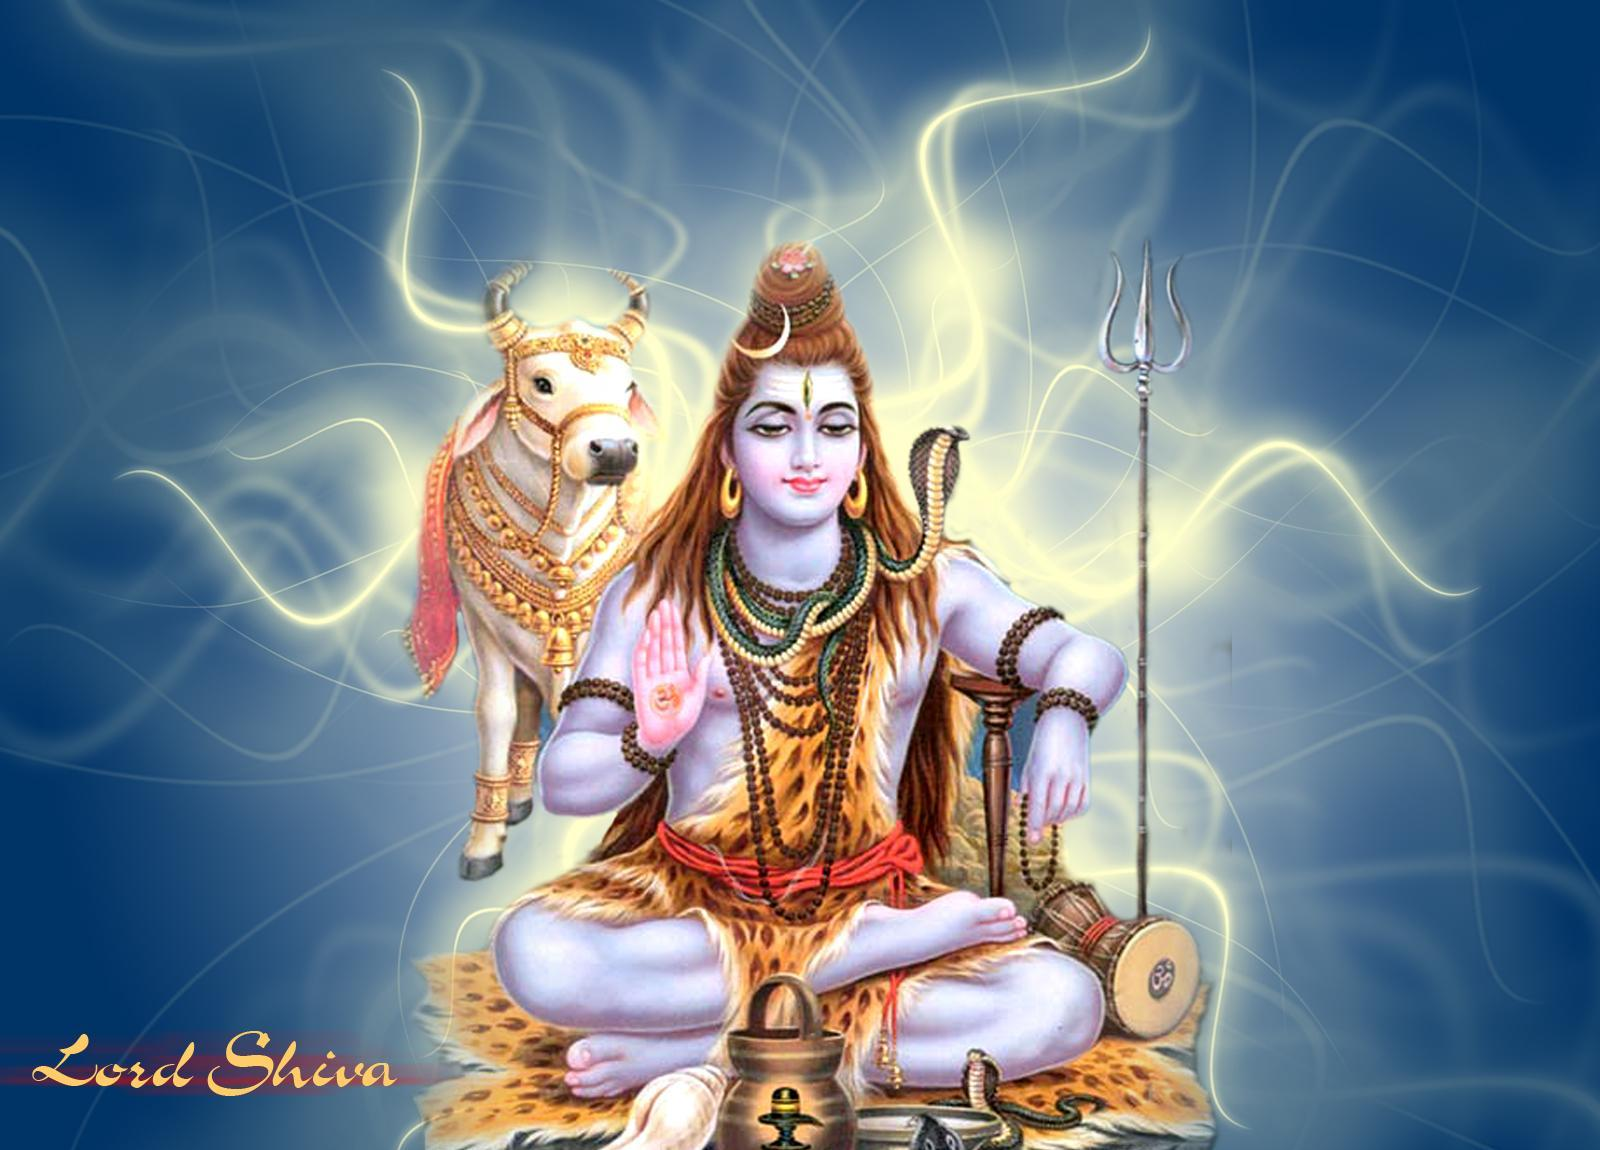 Wallpapers Hindu God Shiva Wallpaper Lord Shiva Gets Angry 1600x1150